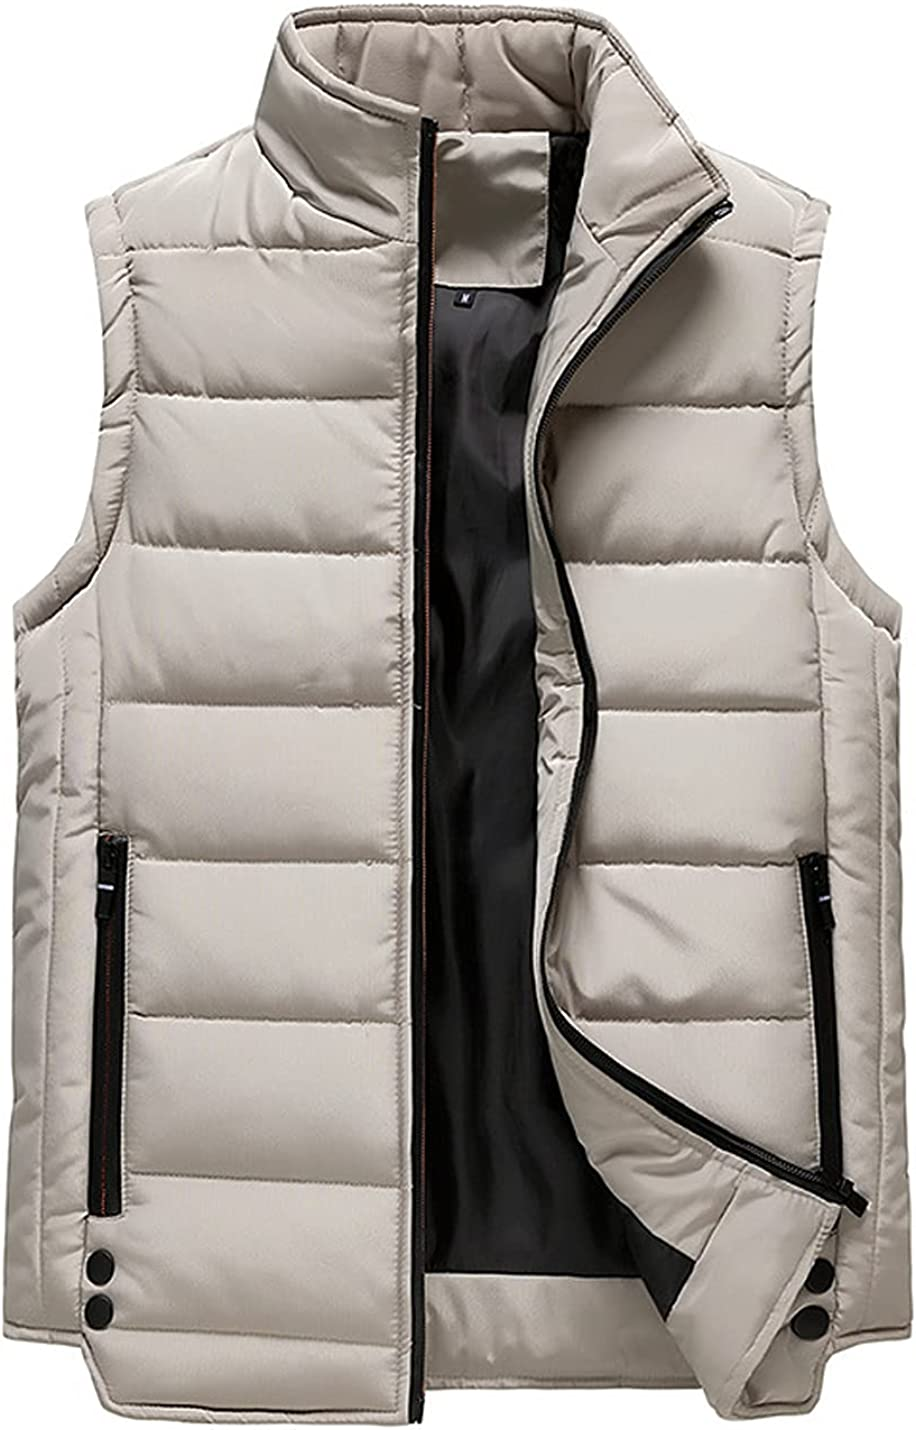 Peaceglad Men's Winter Zip Up Down Puffer Vest Sleeveless Padded Quilted Lightweight Jackets with Pockets